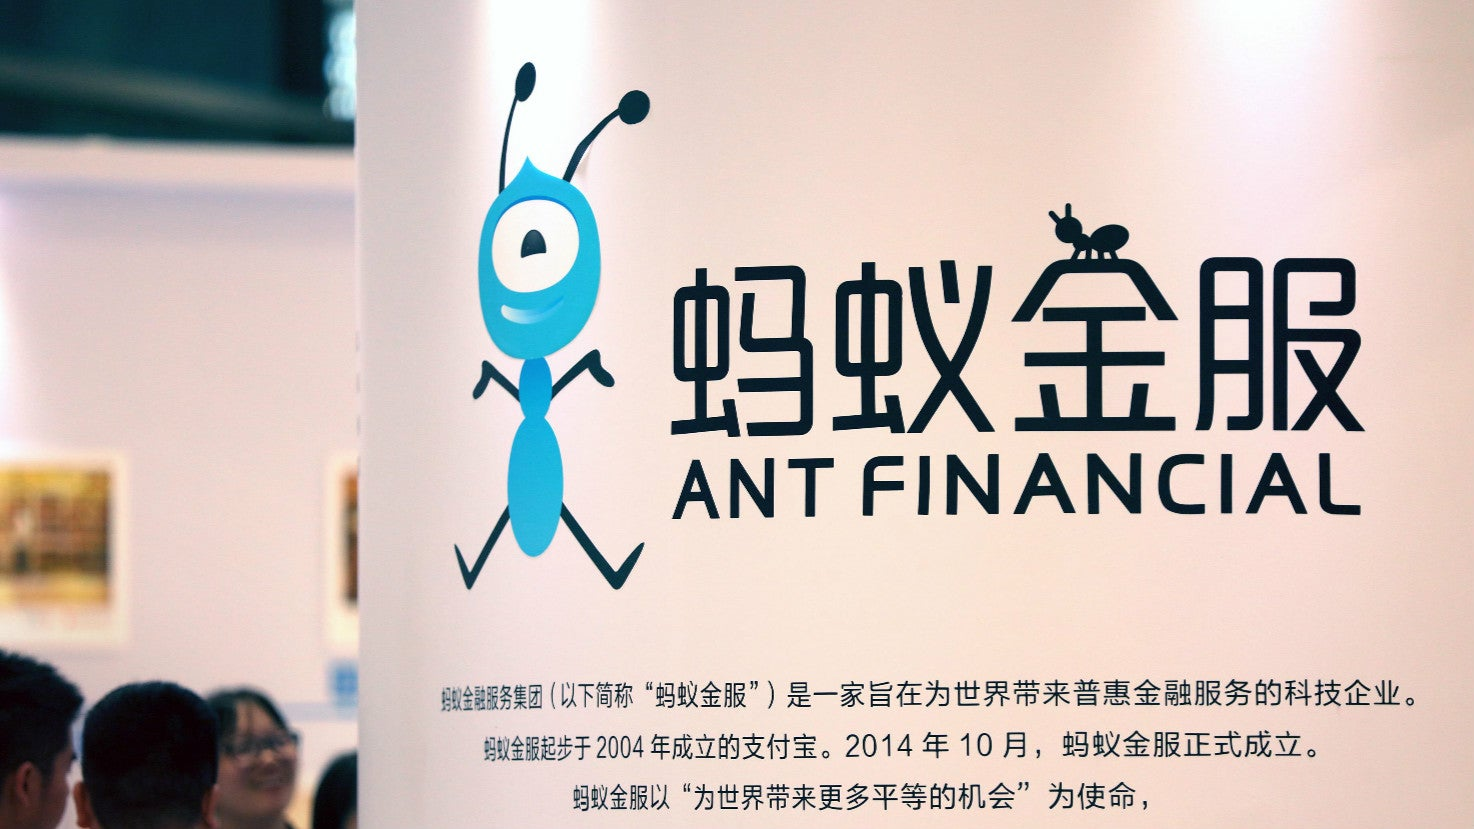 Alibaba Affiliate Ant Financial Changing Name Focus The Motley Fool Ant, which spun out of alibaba in 2010, has long been seen as a ant group sincerely apologizes to you for any inconvenience caused by this development, the company said in a message to investors. alibaba affiliate ant financial